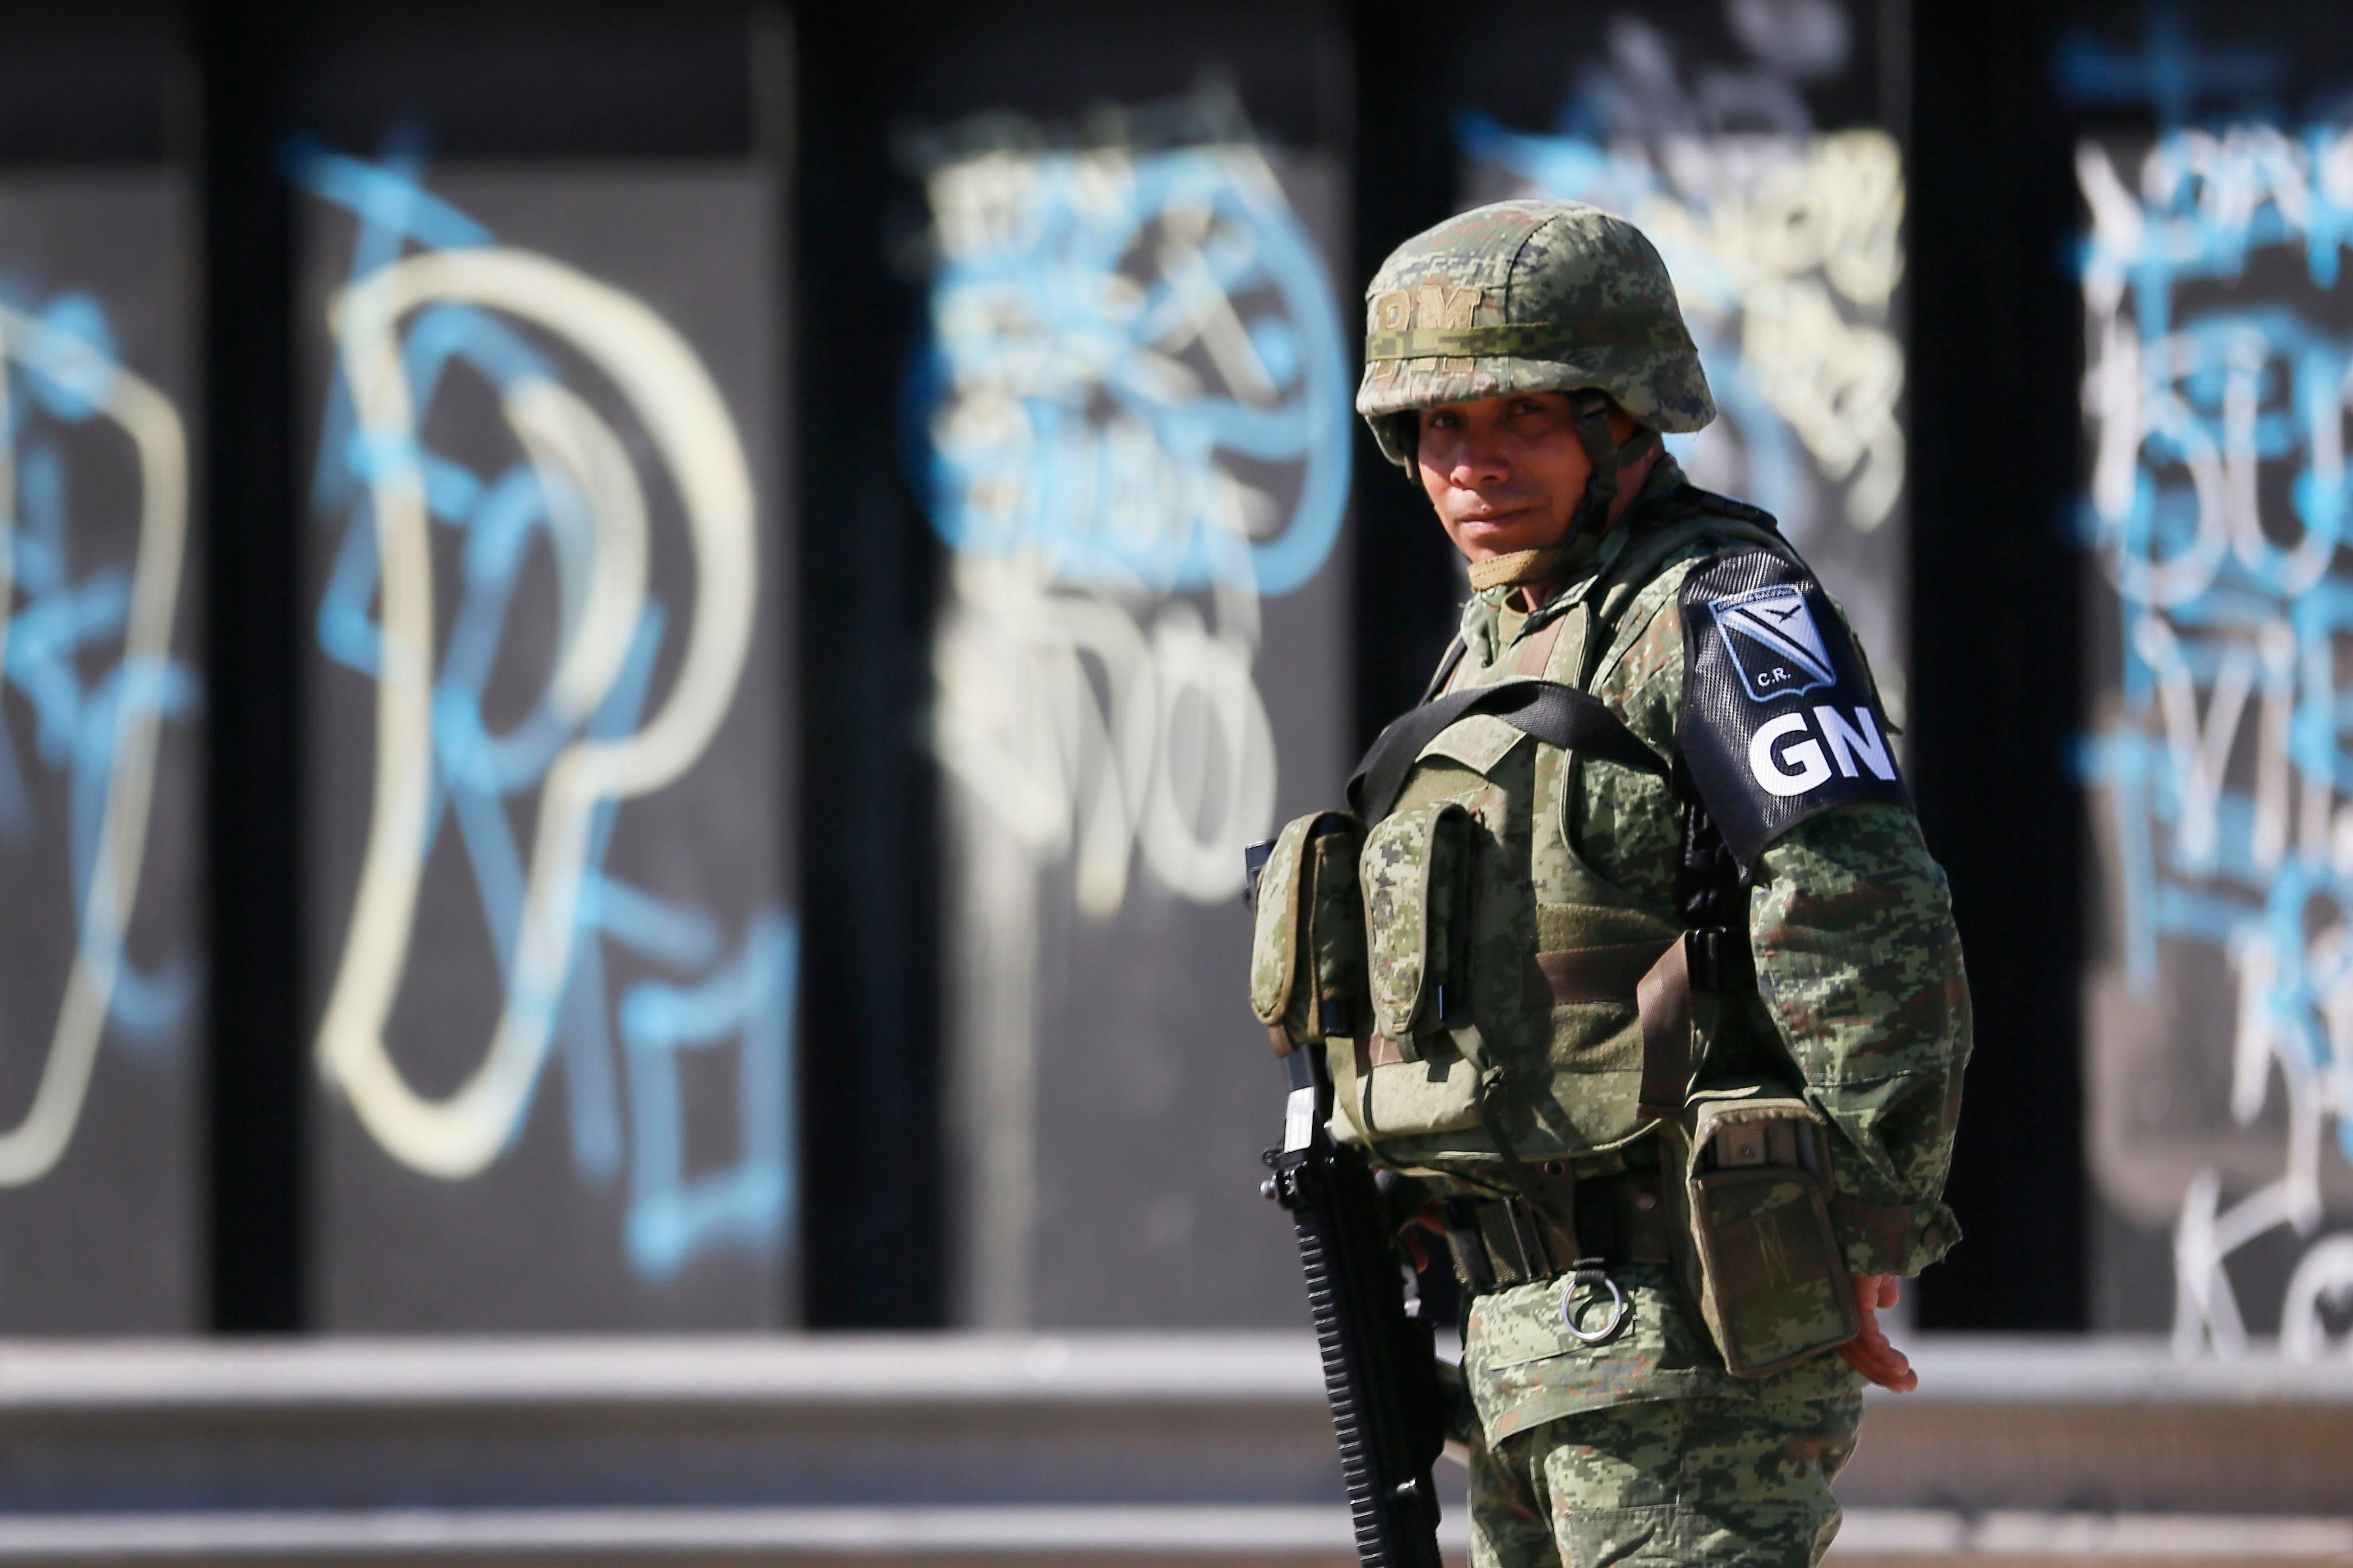 What We're Watching: Mexico's Border Patrols, Ukrainian Outrage